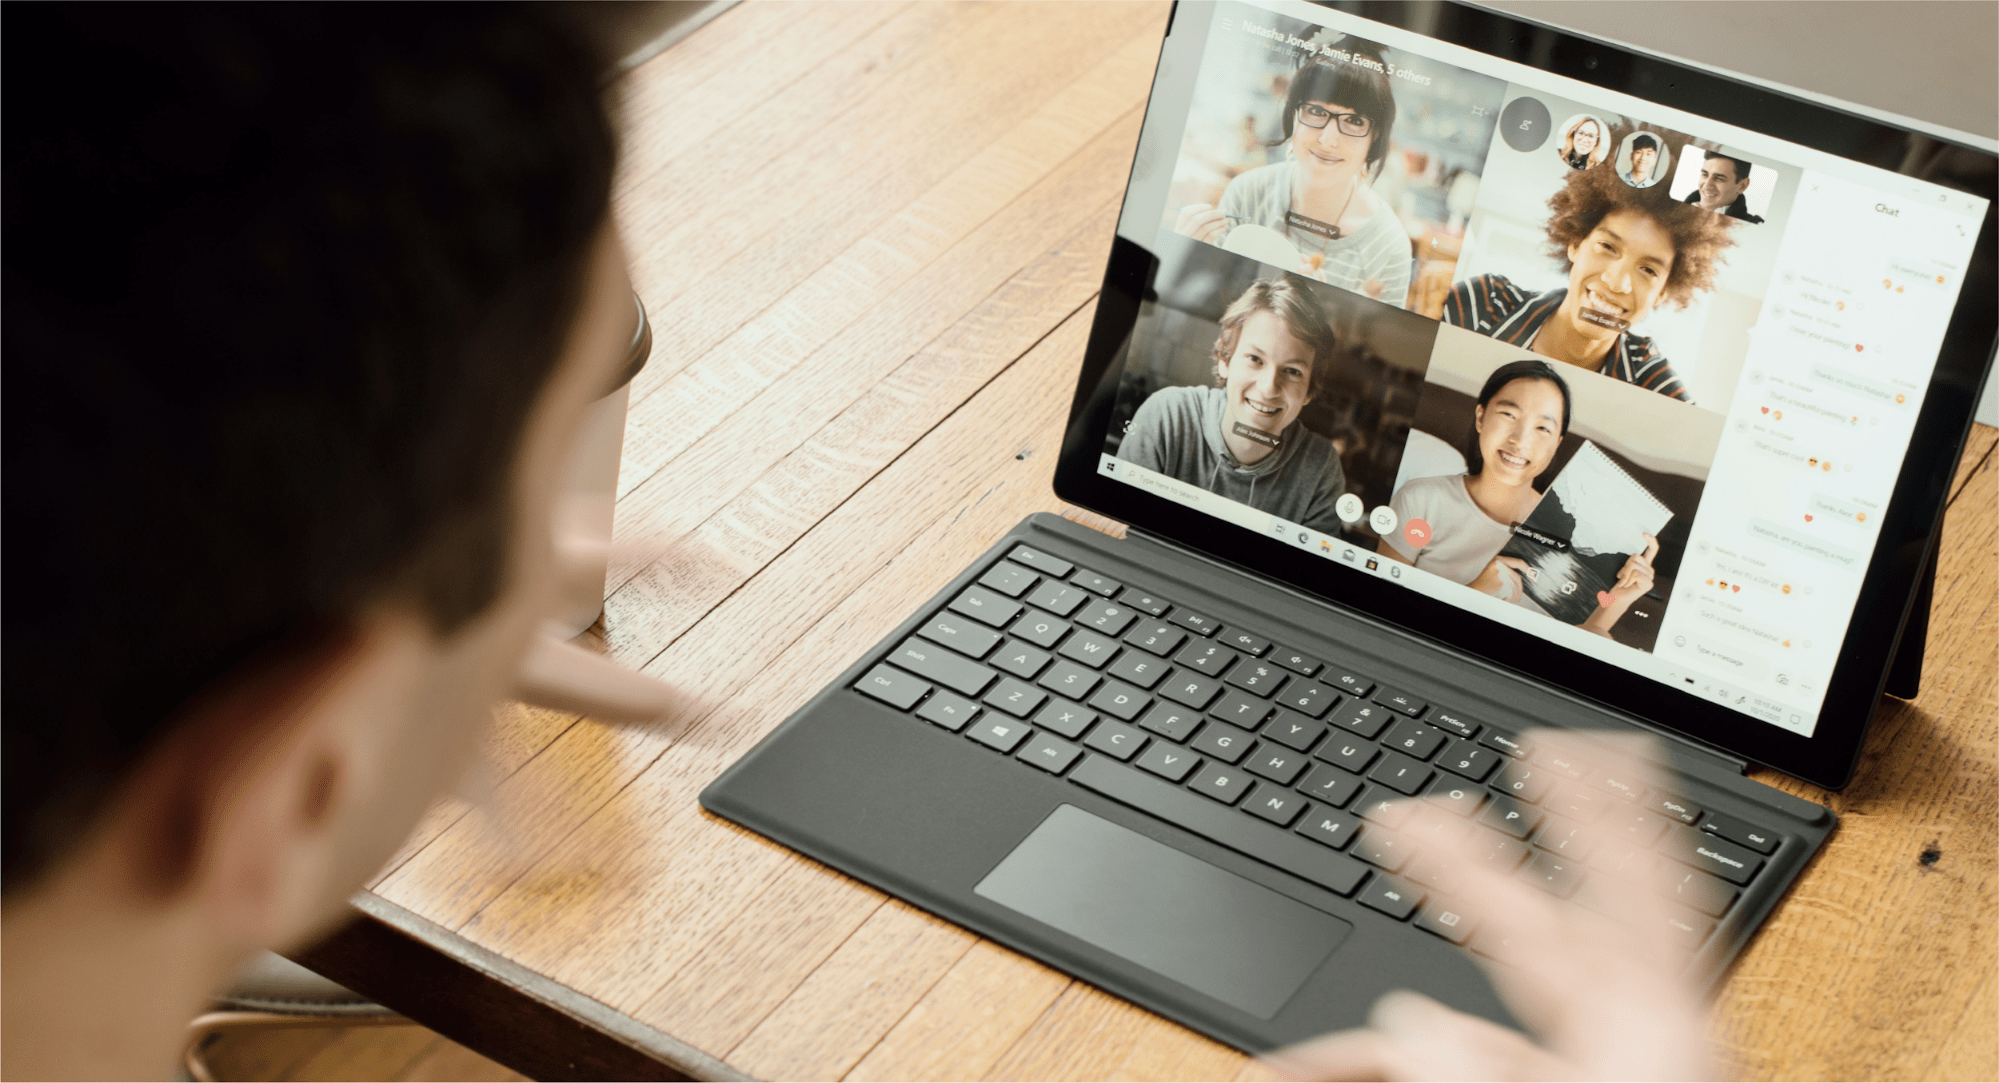 A man looks at a laptop with a video call where four team members are visible on screen